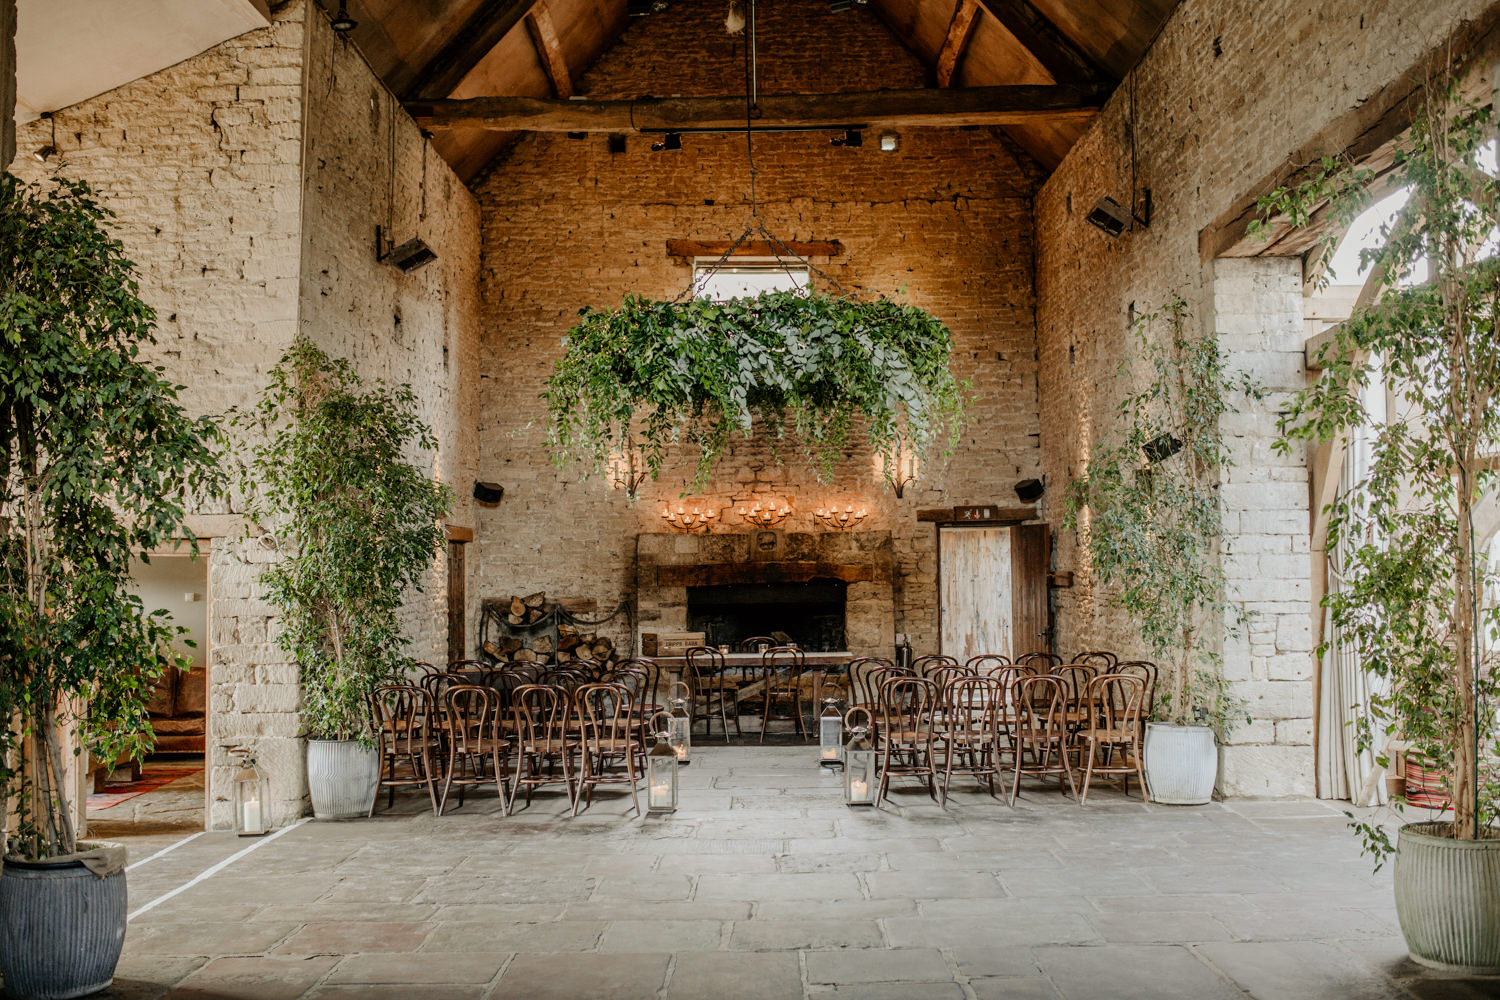 ceremony area inside Cripps Barn with wooden chairs and greenery in front of fireplace